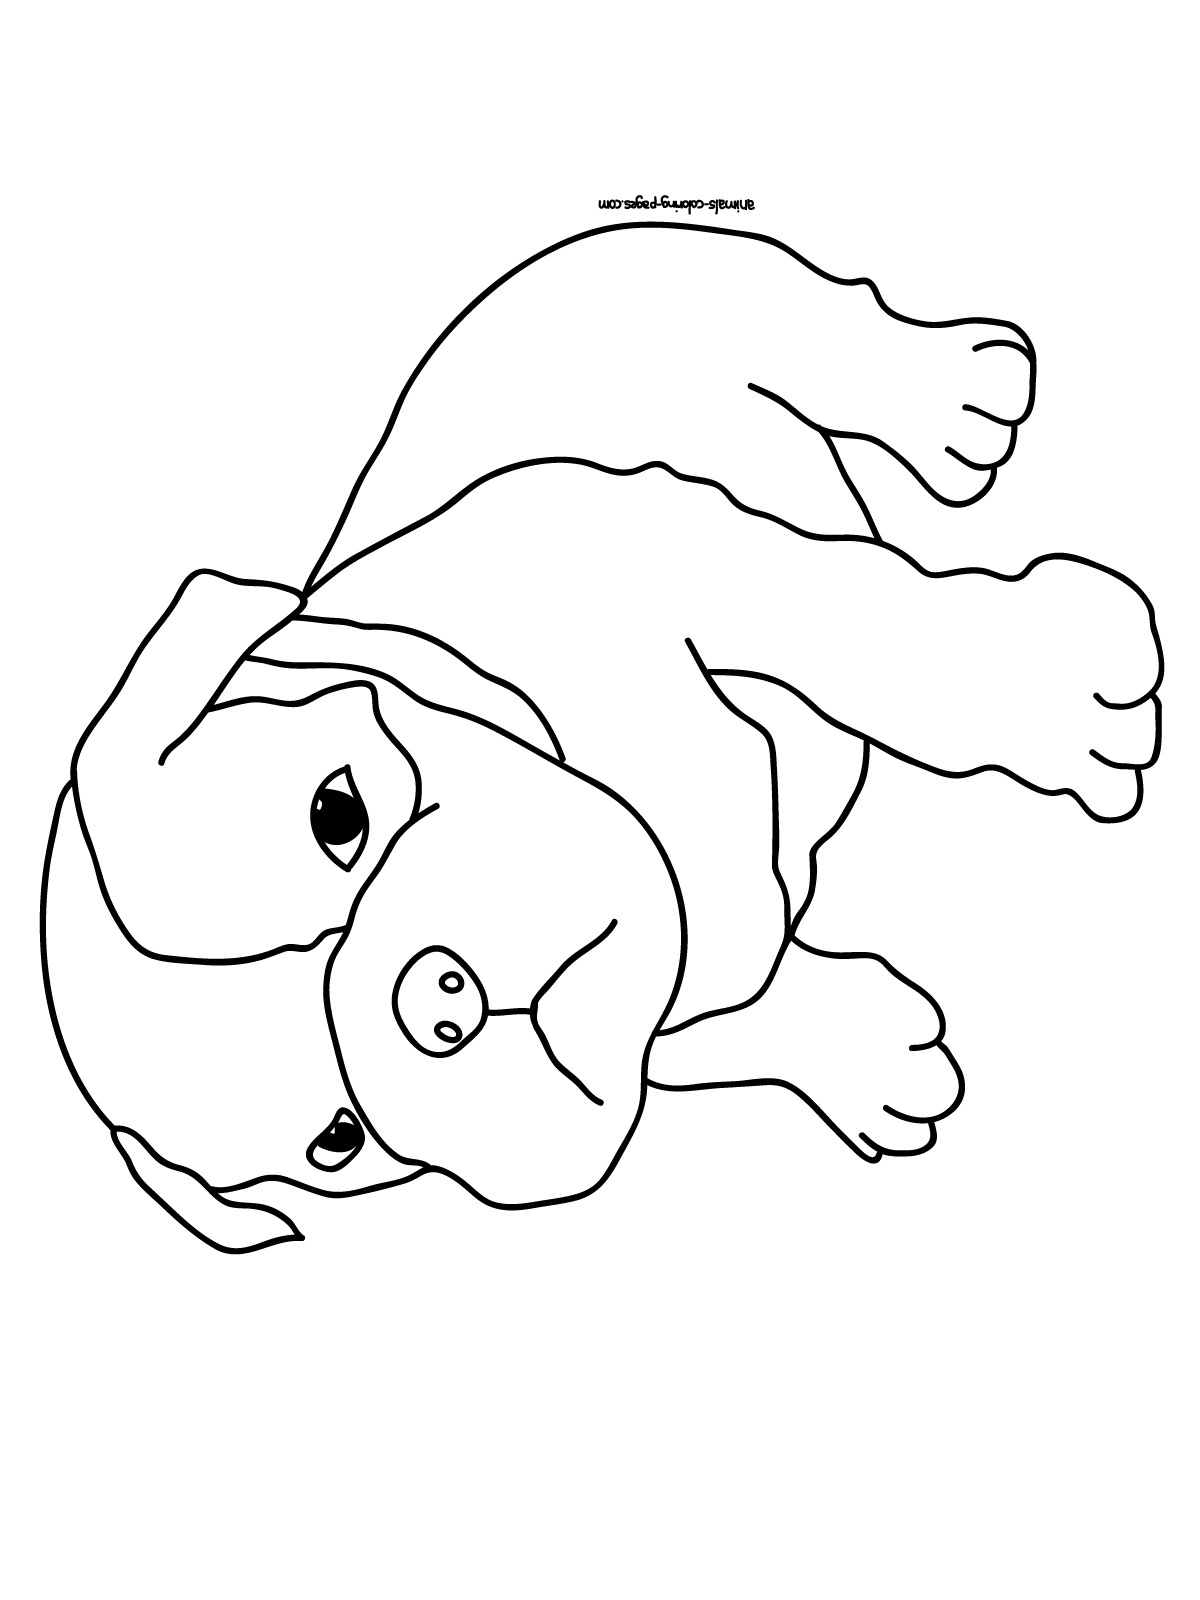 coloring photos to print | Dogs | Pets | Animals Coloring Pages ...